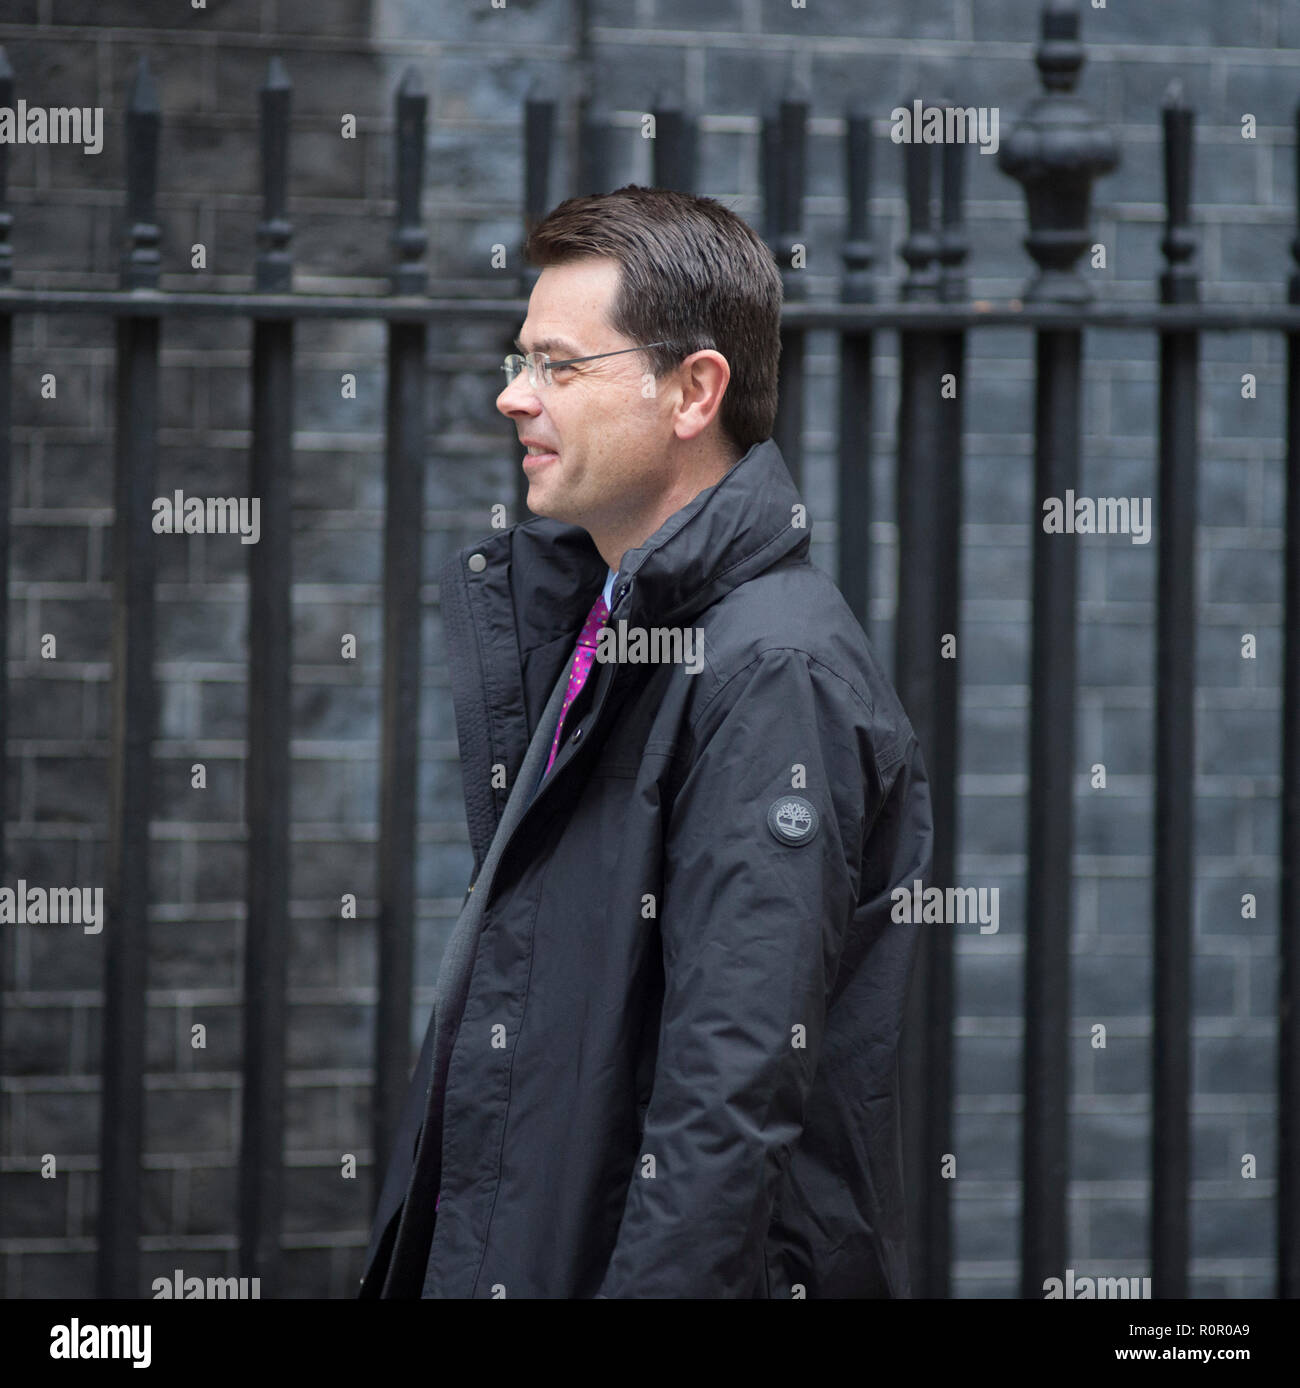 Downing Street, London, UK. 6 Nov 2018. James Brokenshire, Secretary of State for Housing, Communities & Local Government, arrives for Cabinet Meeting - Stock Image